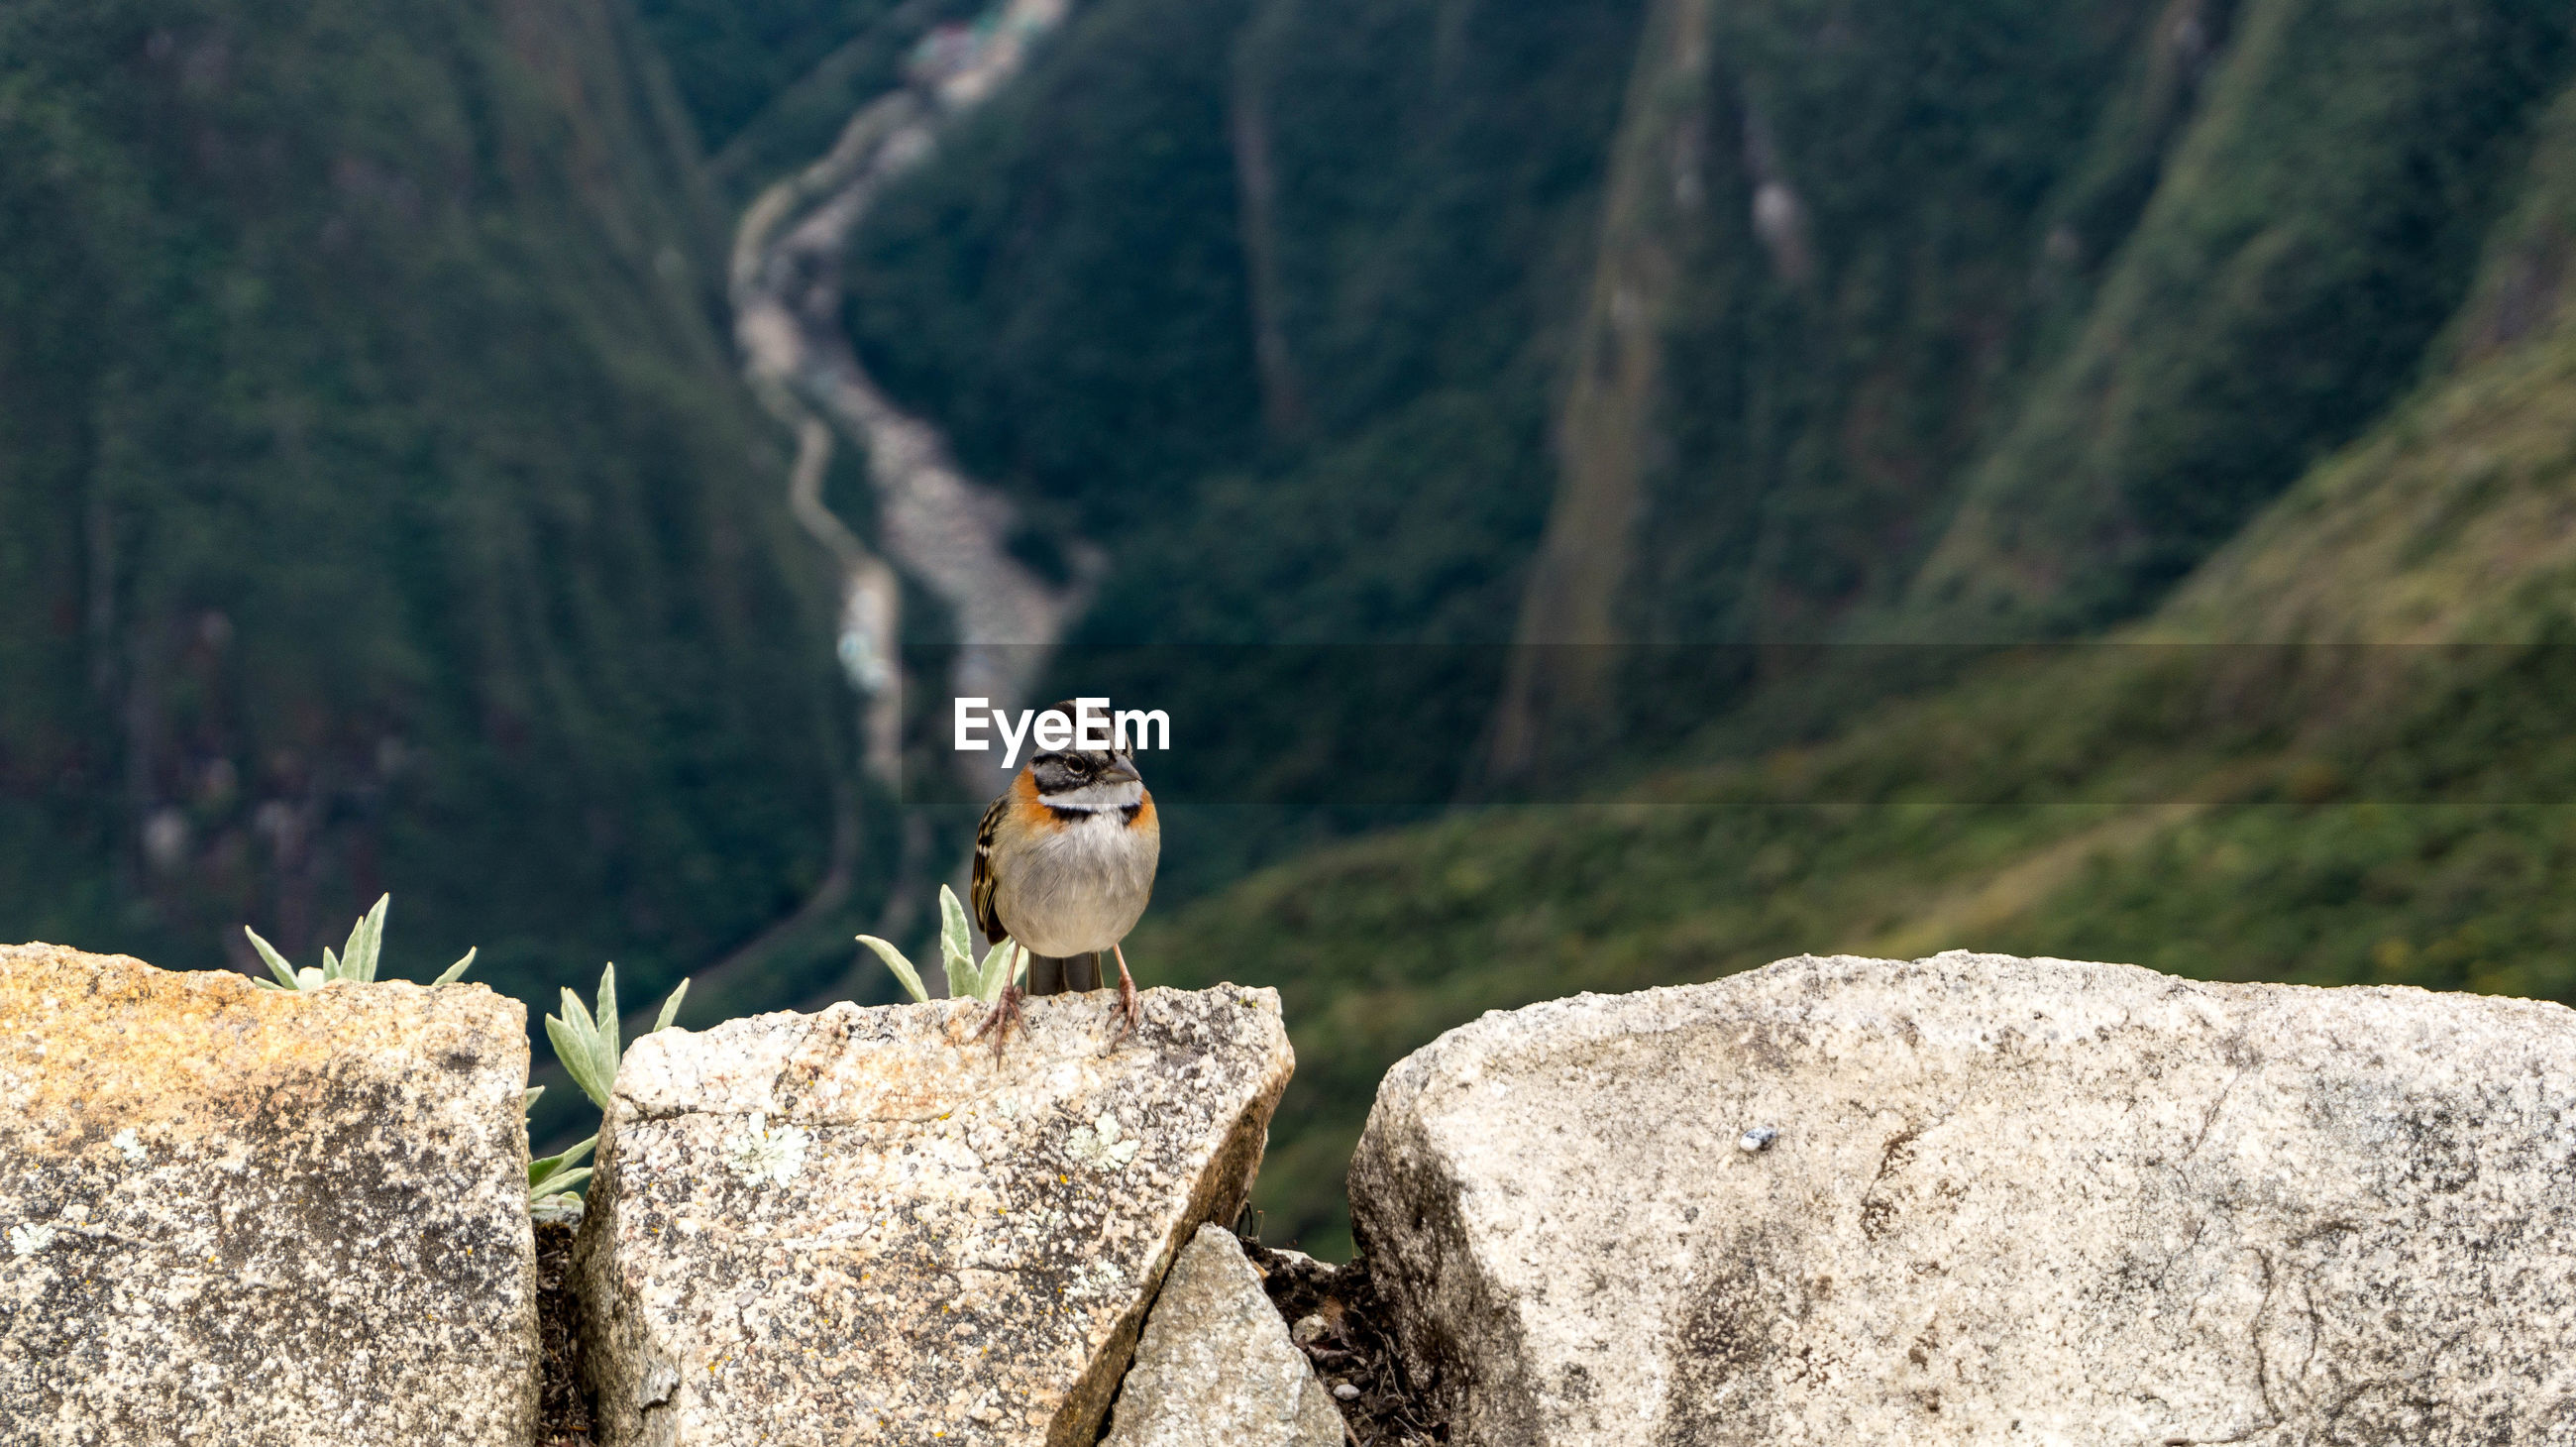 Bird perching on rock against mountains